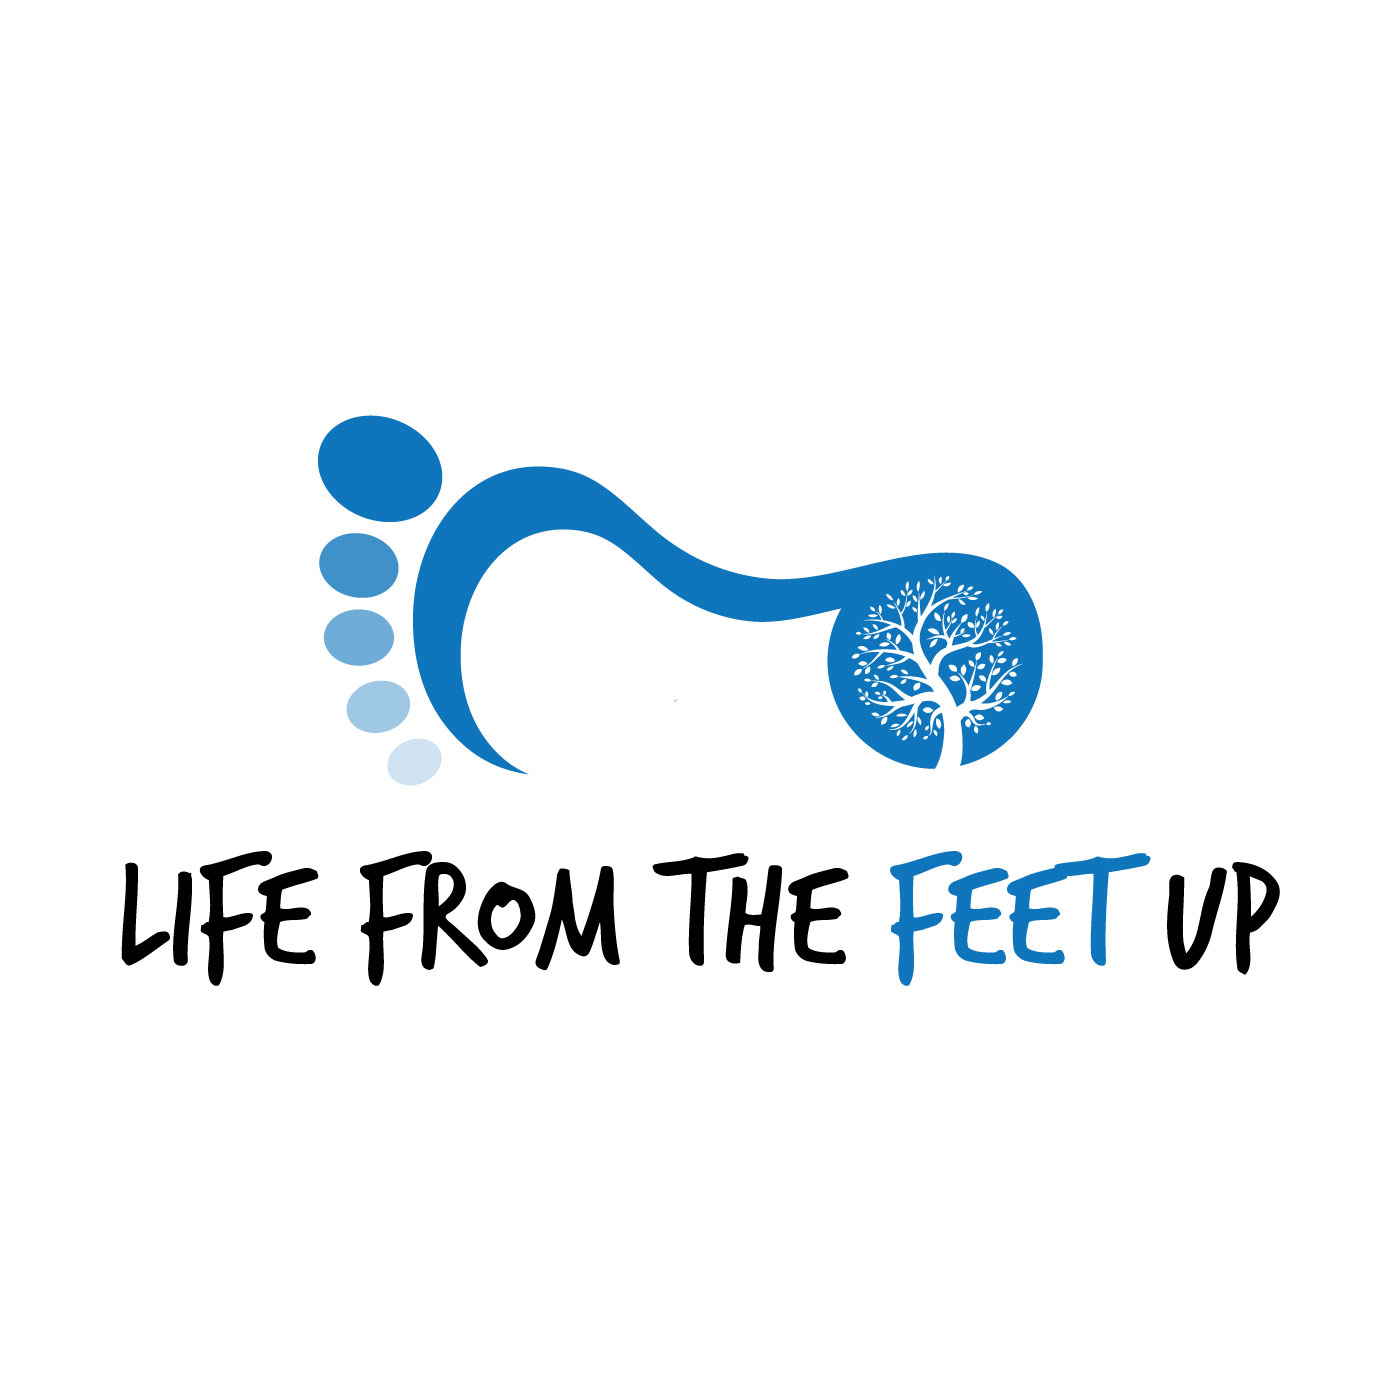 Life From The Feet Up